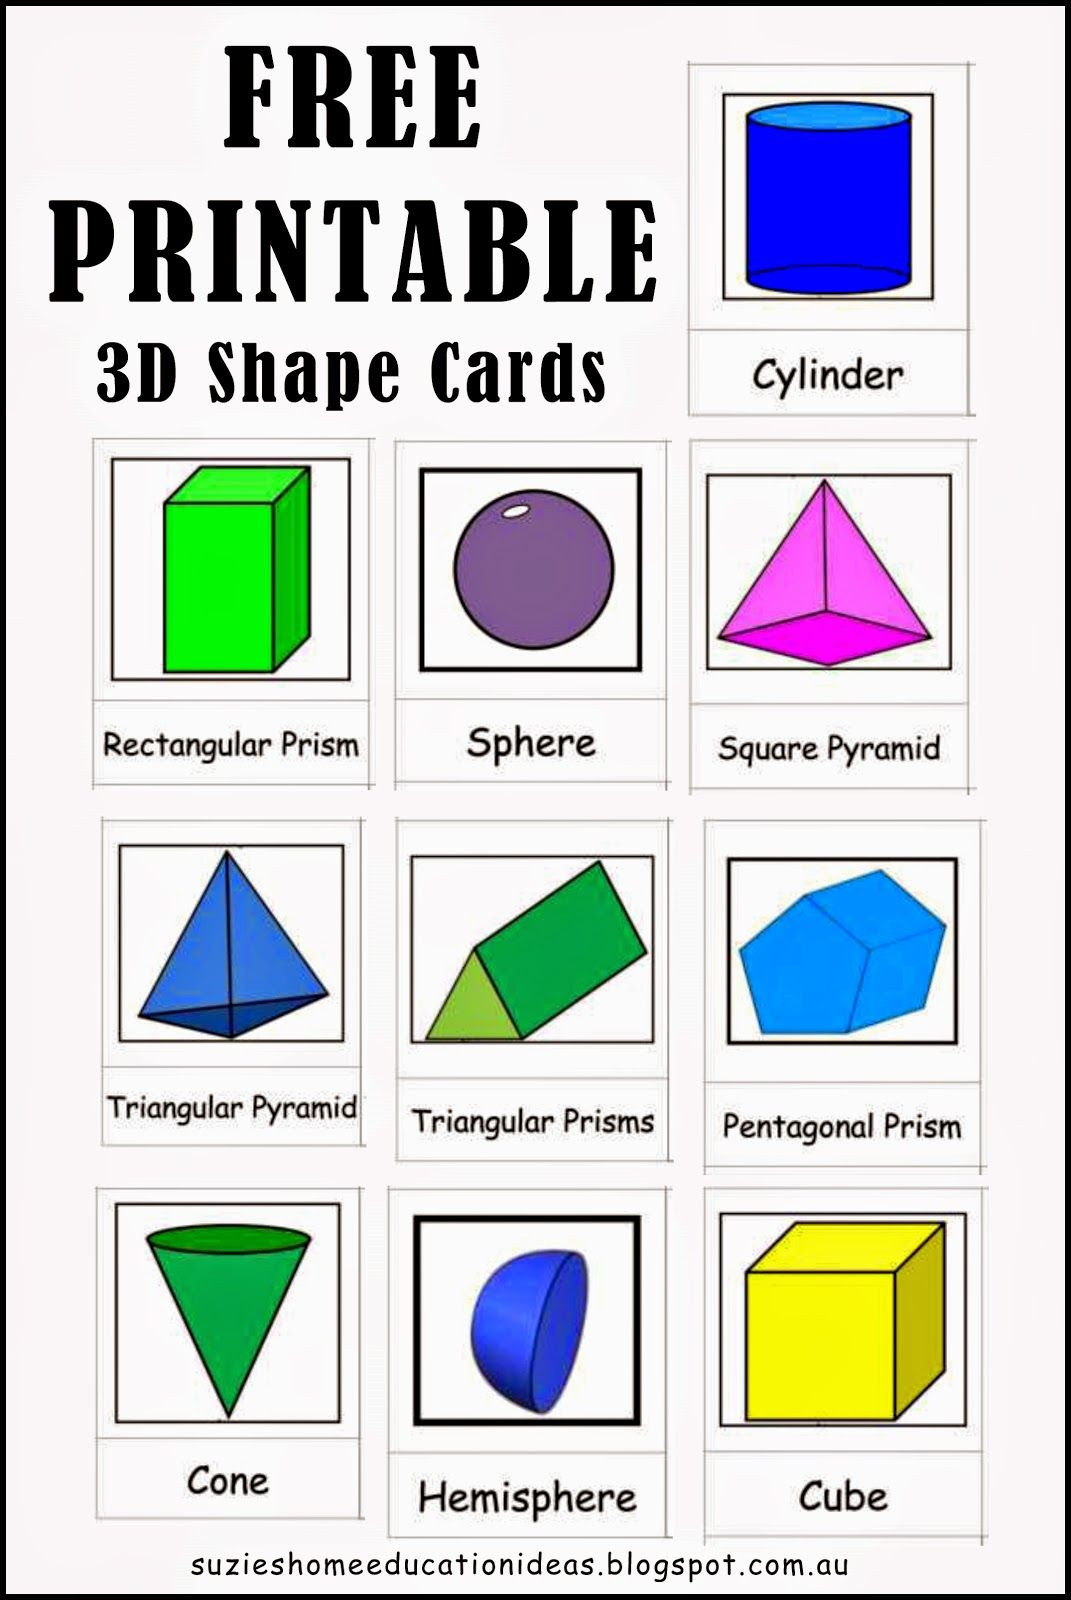 Free Printable 3d Shapes Worksheets Exploring 3d Shapes Free Printable 3d Shape Cards